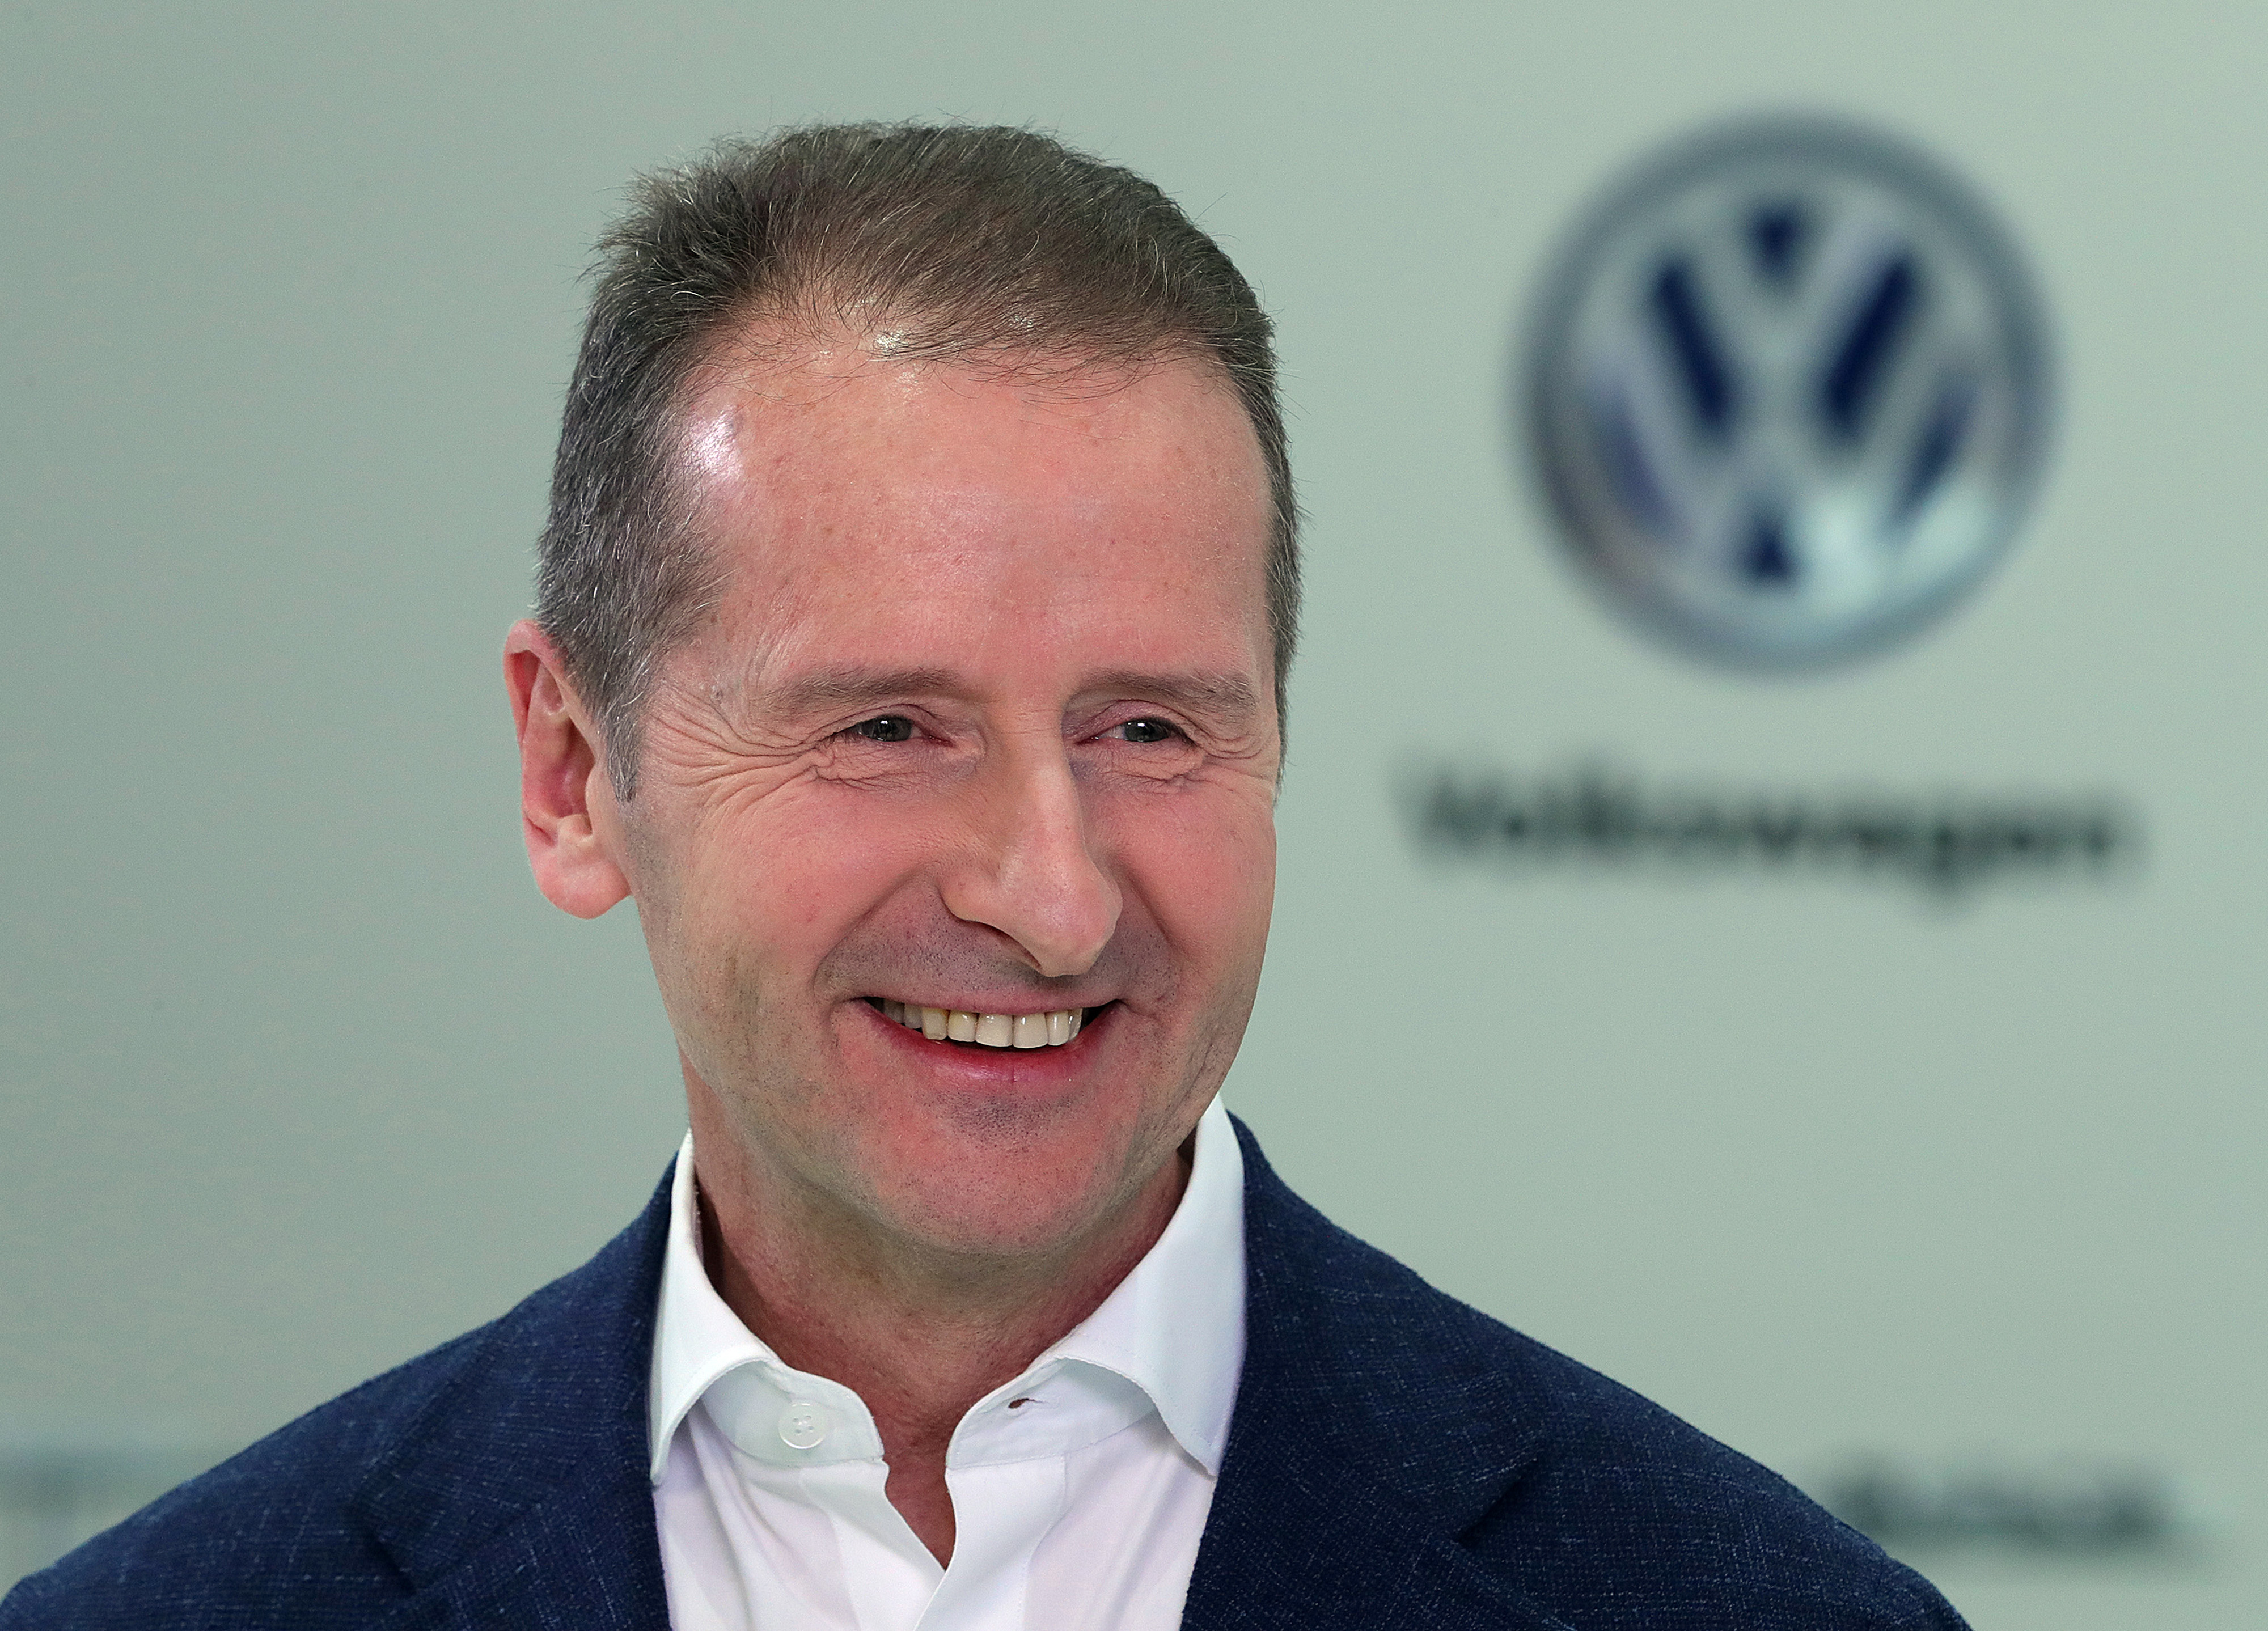 Volkswagen AG Brand 2025 Strategy Update News Conference